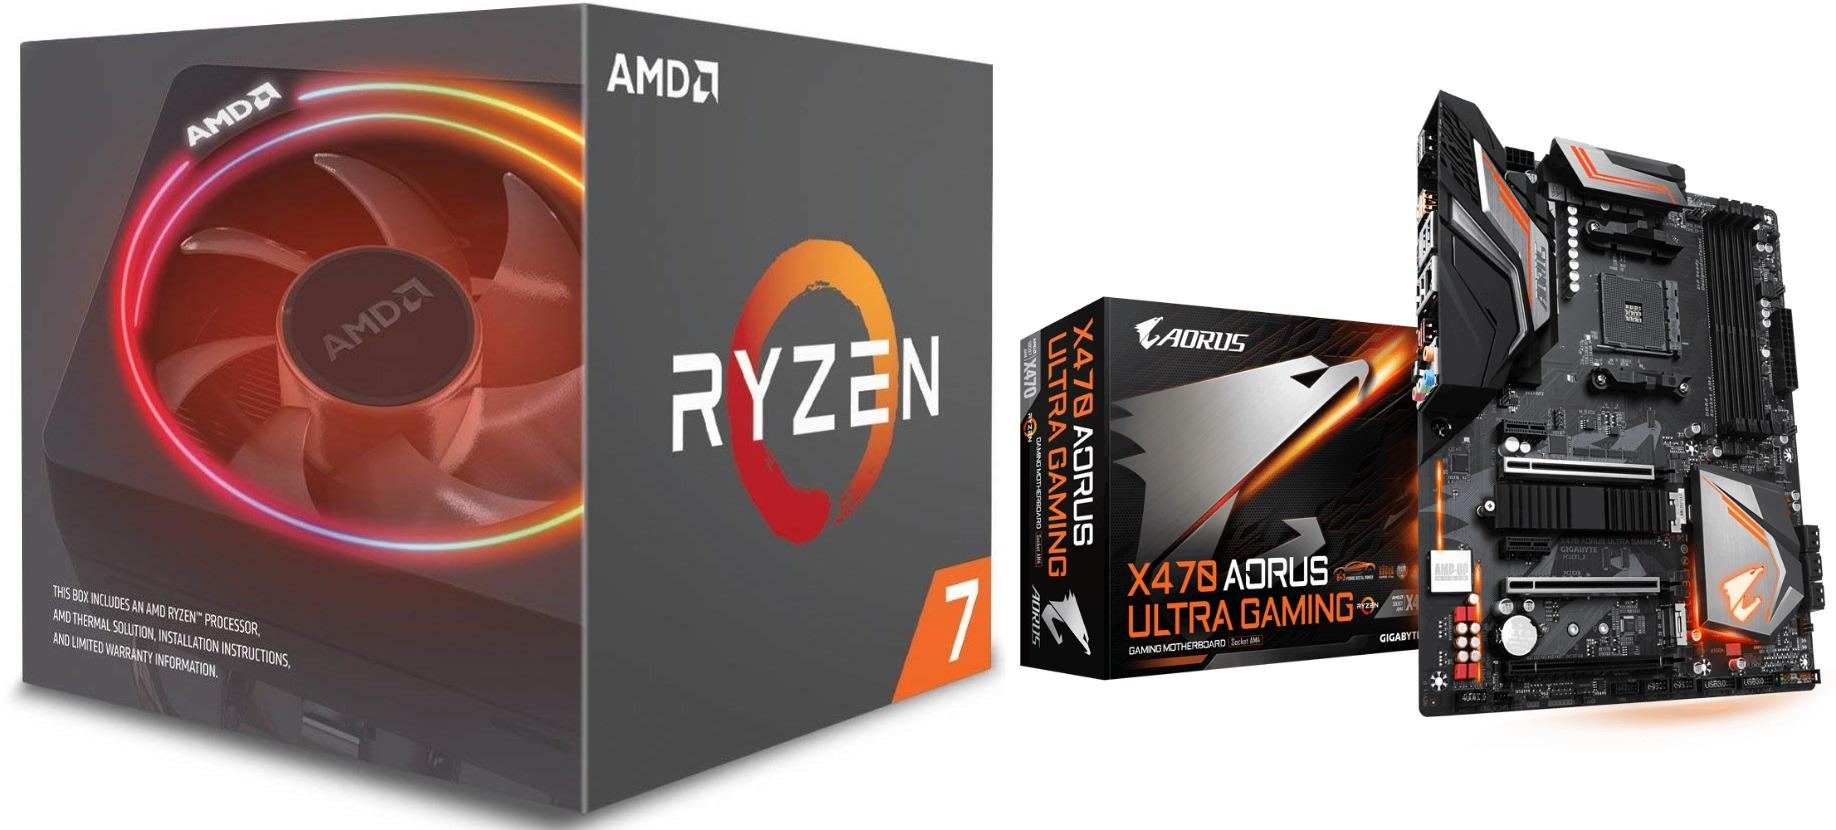 AMD Ryzen 7 2700X 8-Core 3 7 GHz with Wraith Prism LED Cooler Desktop  Processor BUNDLE WITH GIGABYTE X470 AORUS ULTRA GAMING ATX AMD Motherboard